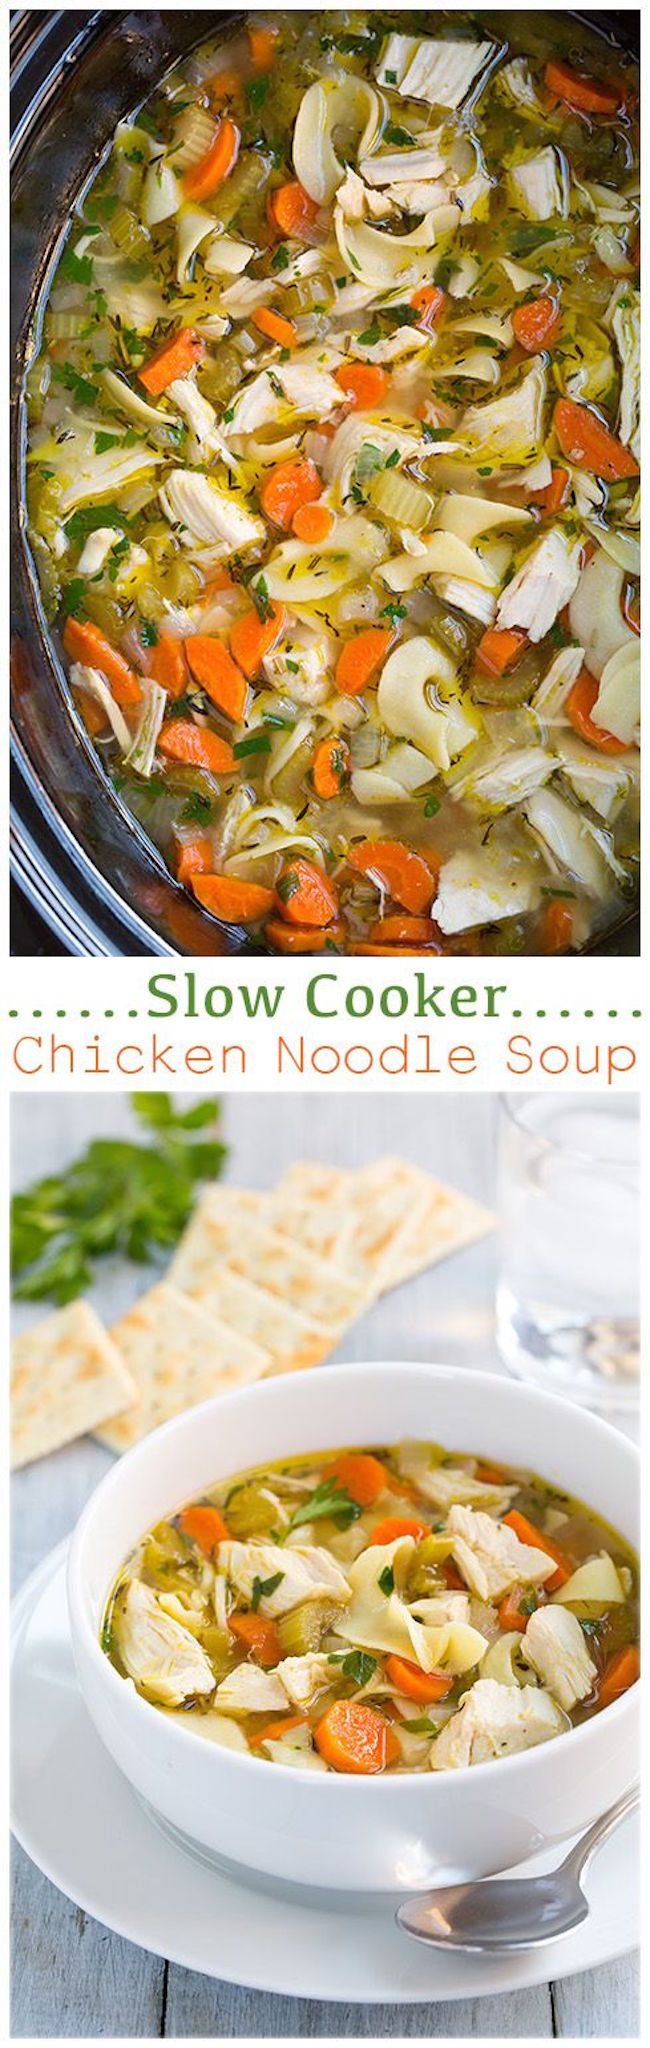 The 11 Best Crockpot Soup Recipes